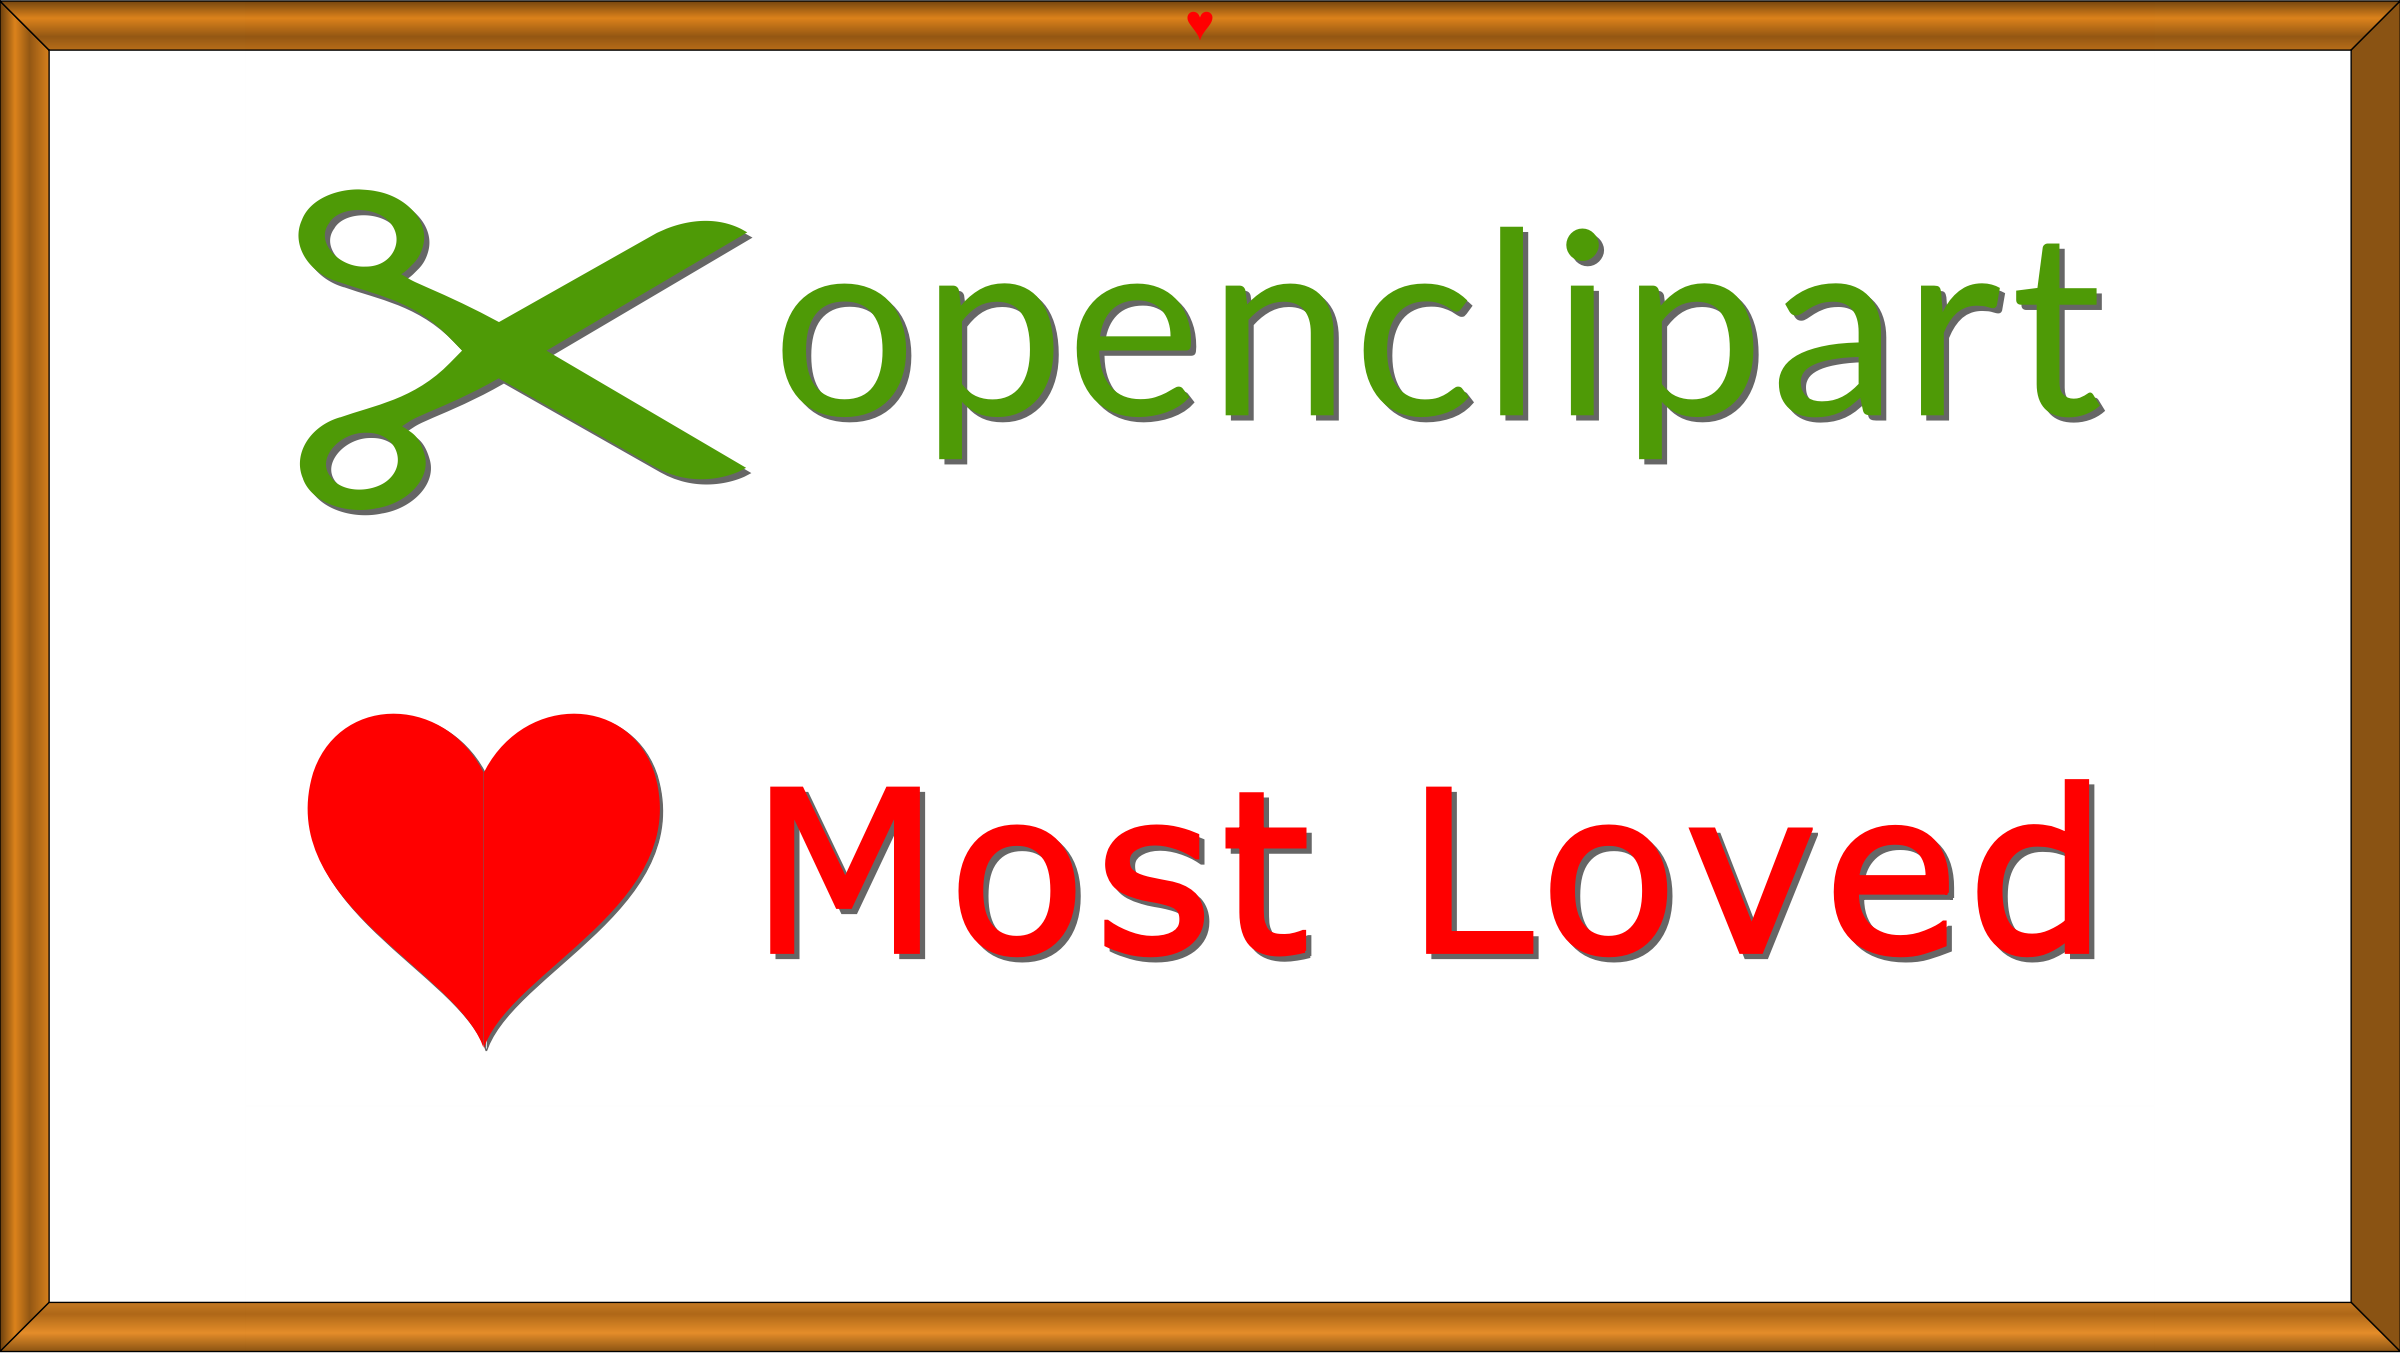 Openclipart Most Loved by JayNick